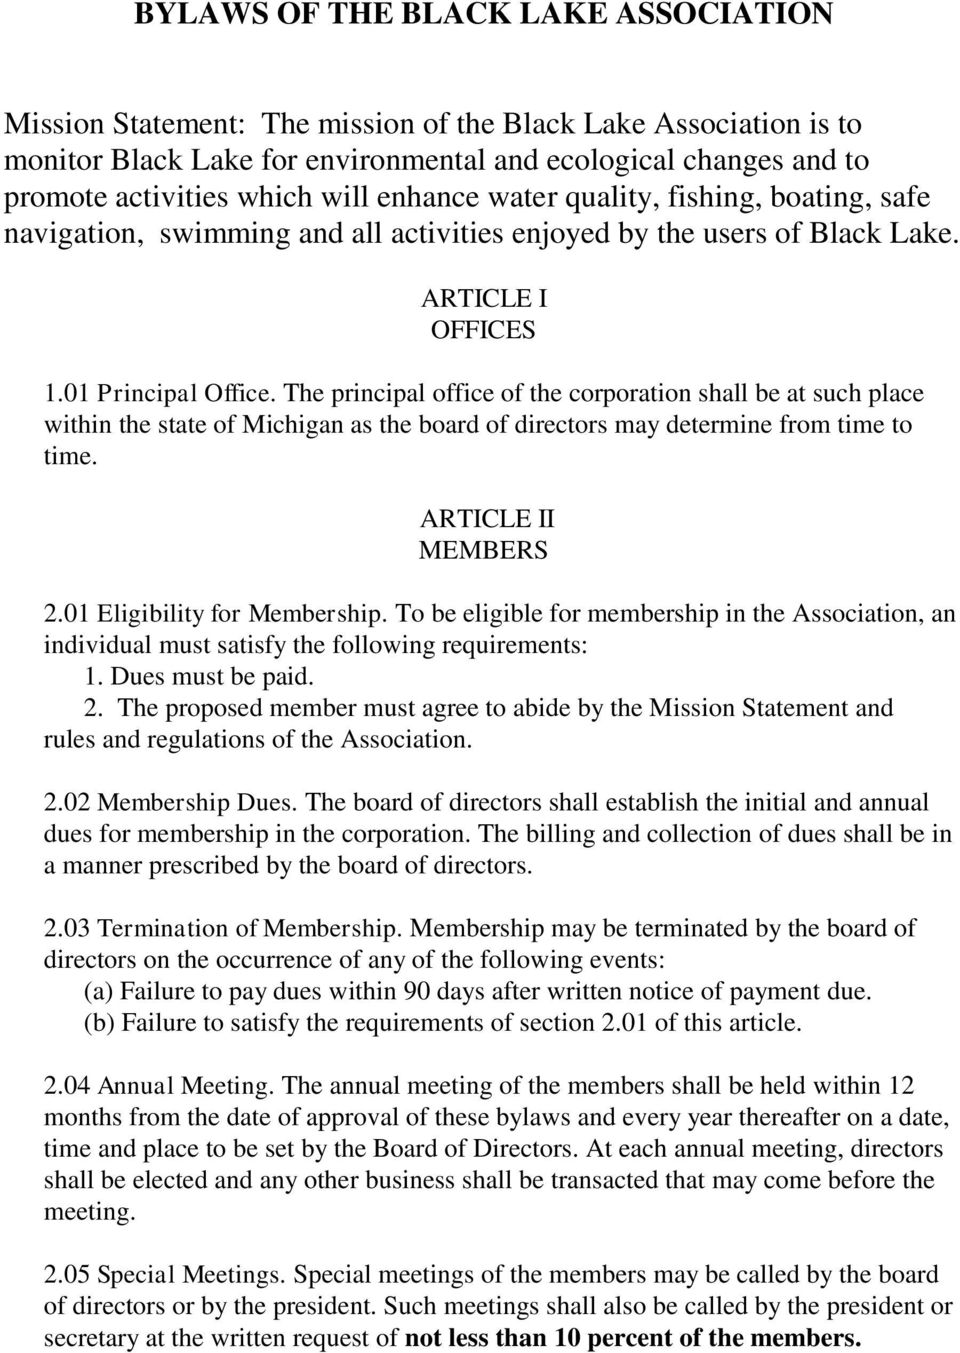 The principal office of the corporation shall be at such place within the state of Michigan as the board of directors may determine from time to time. ARTICLE II MEMBERS 2.